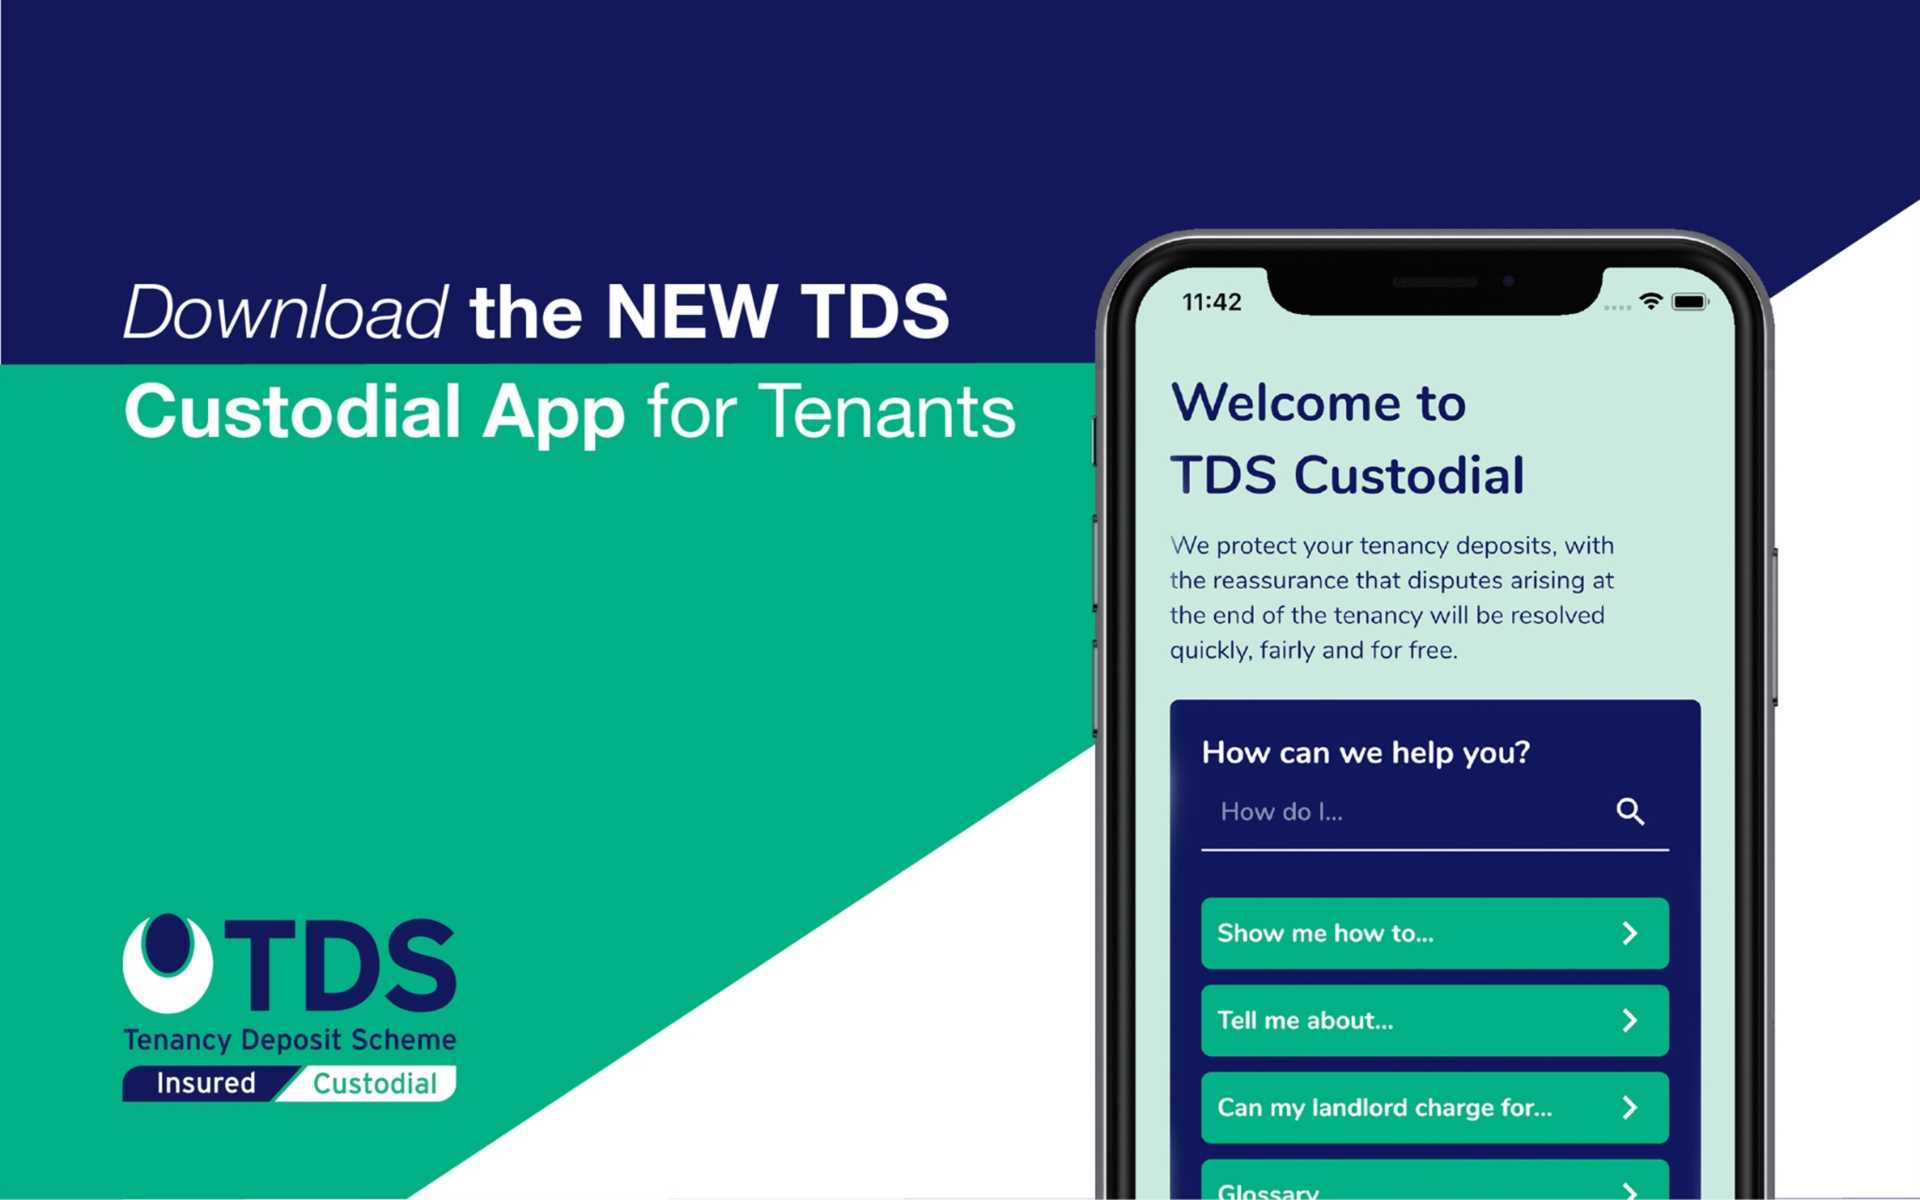 Help for tenants with their deposits from TDS